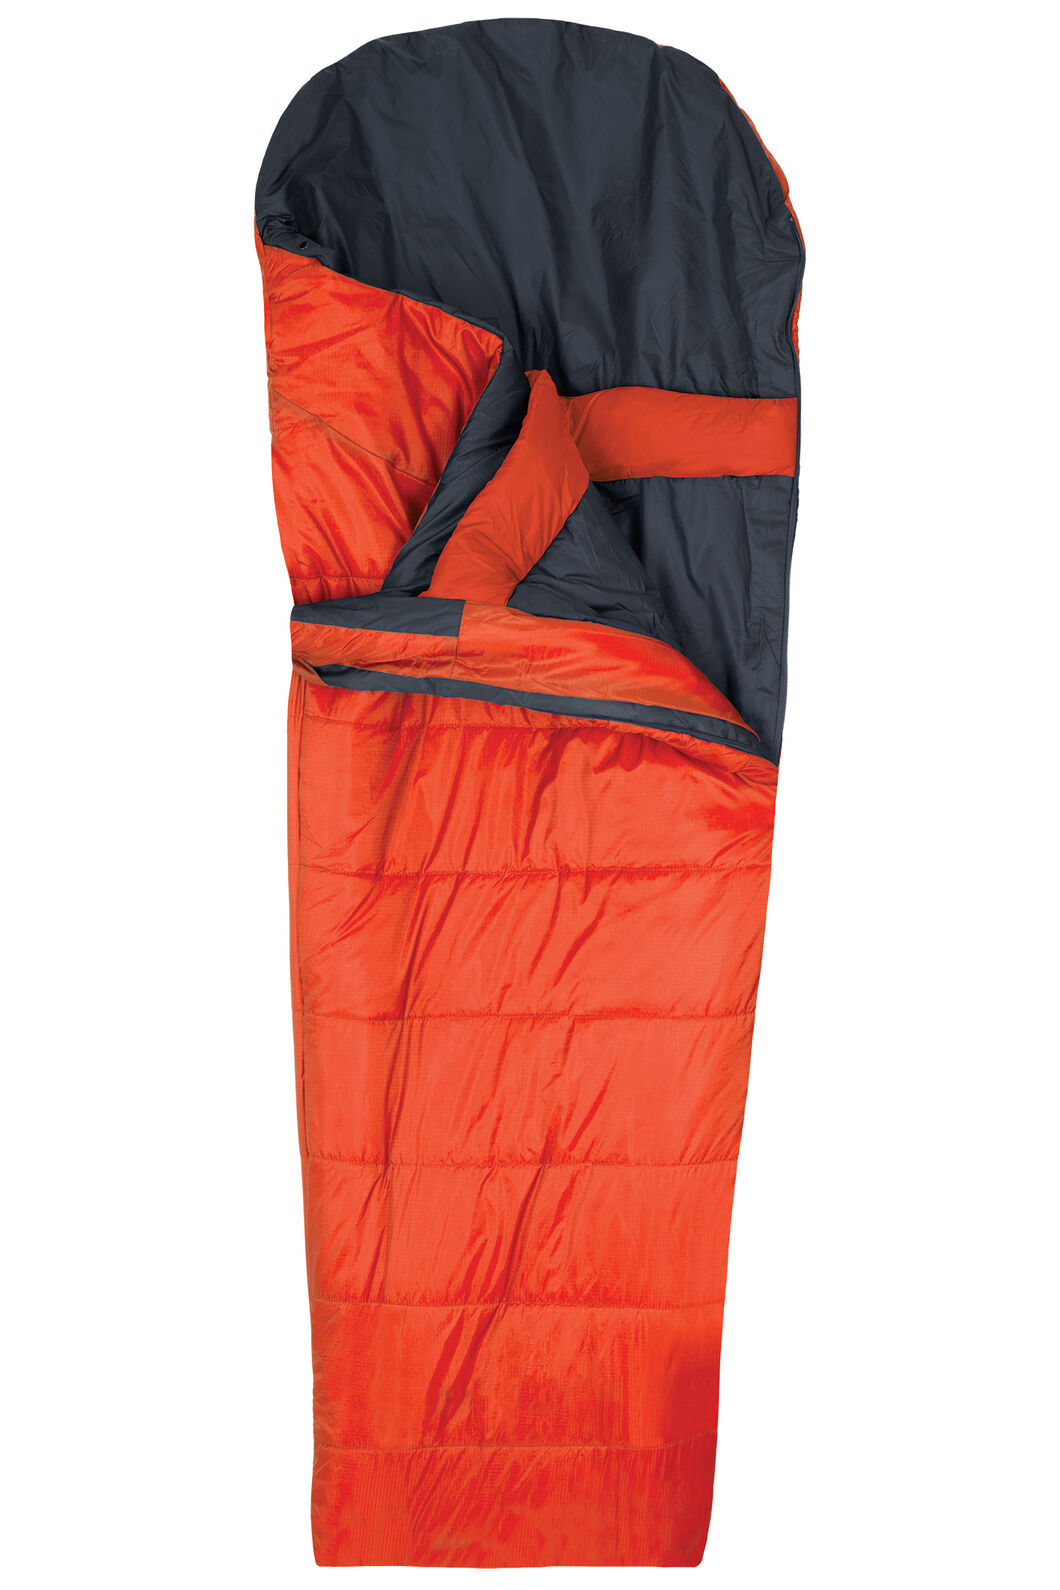 Macpac Roam 150 Synthetic VapourLite™ Sleeping Bag - Kid's, Poinciana, hi-res